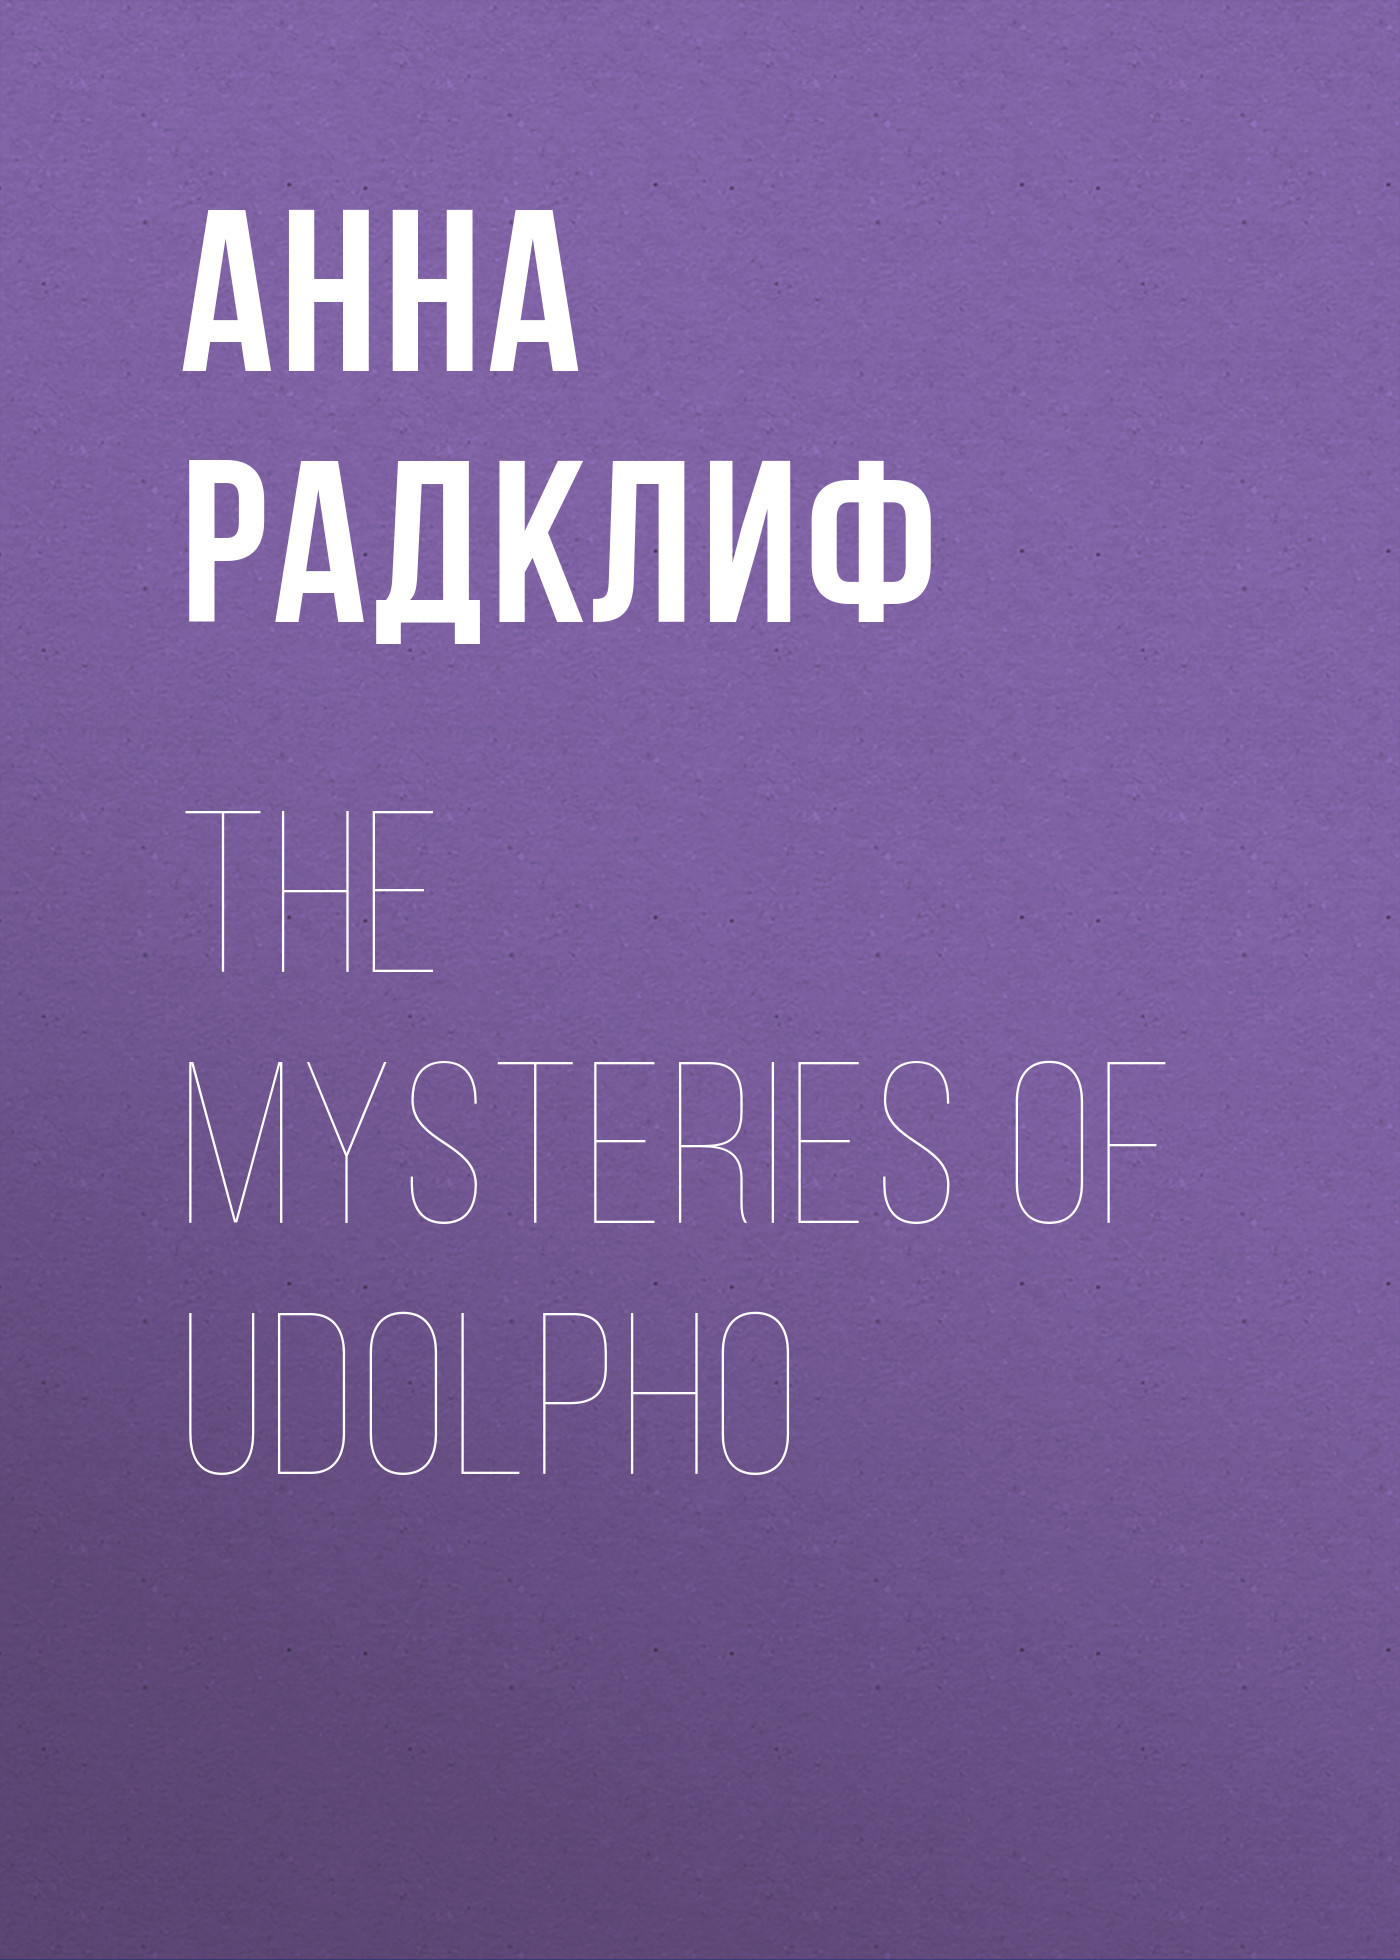 Анна Радклиф The Mysteries of Udolpho lizzie mcguire mysteries case of the missing she geek book 3 junior novel lizzie mcguire mysteries